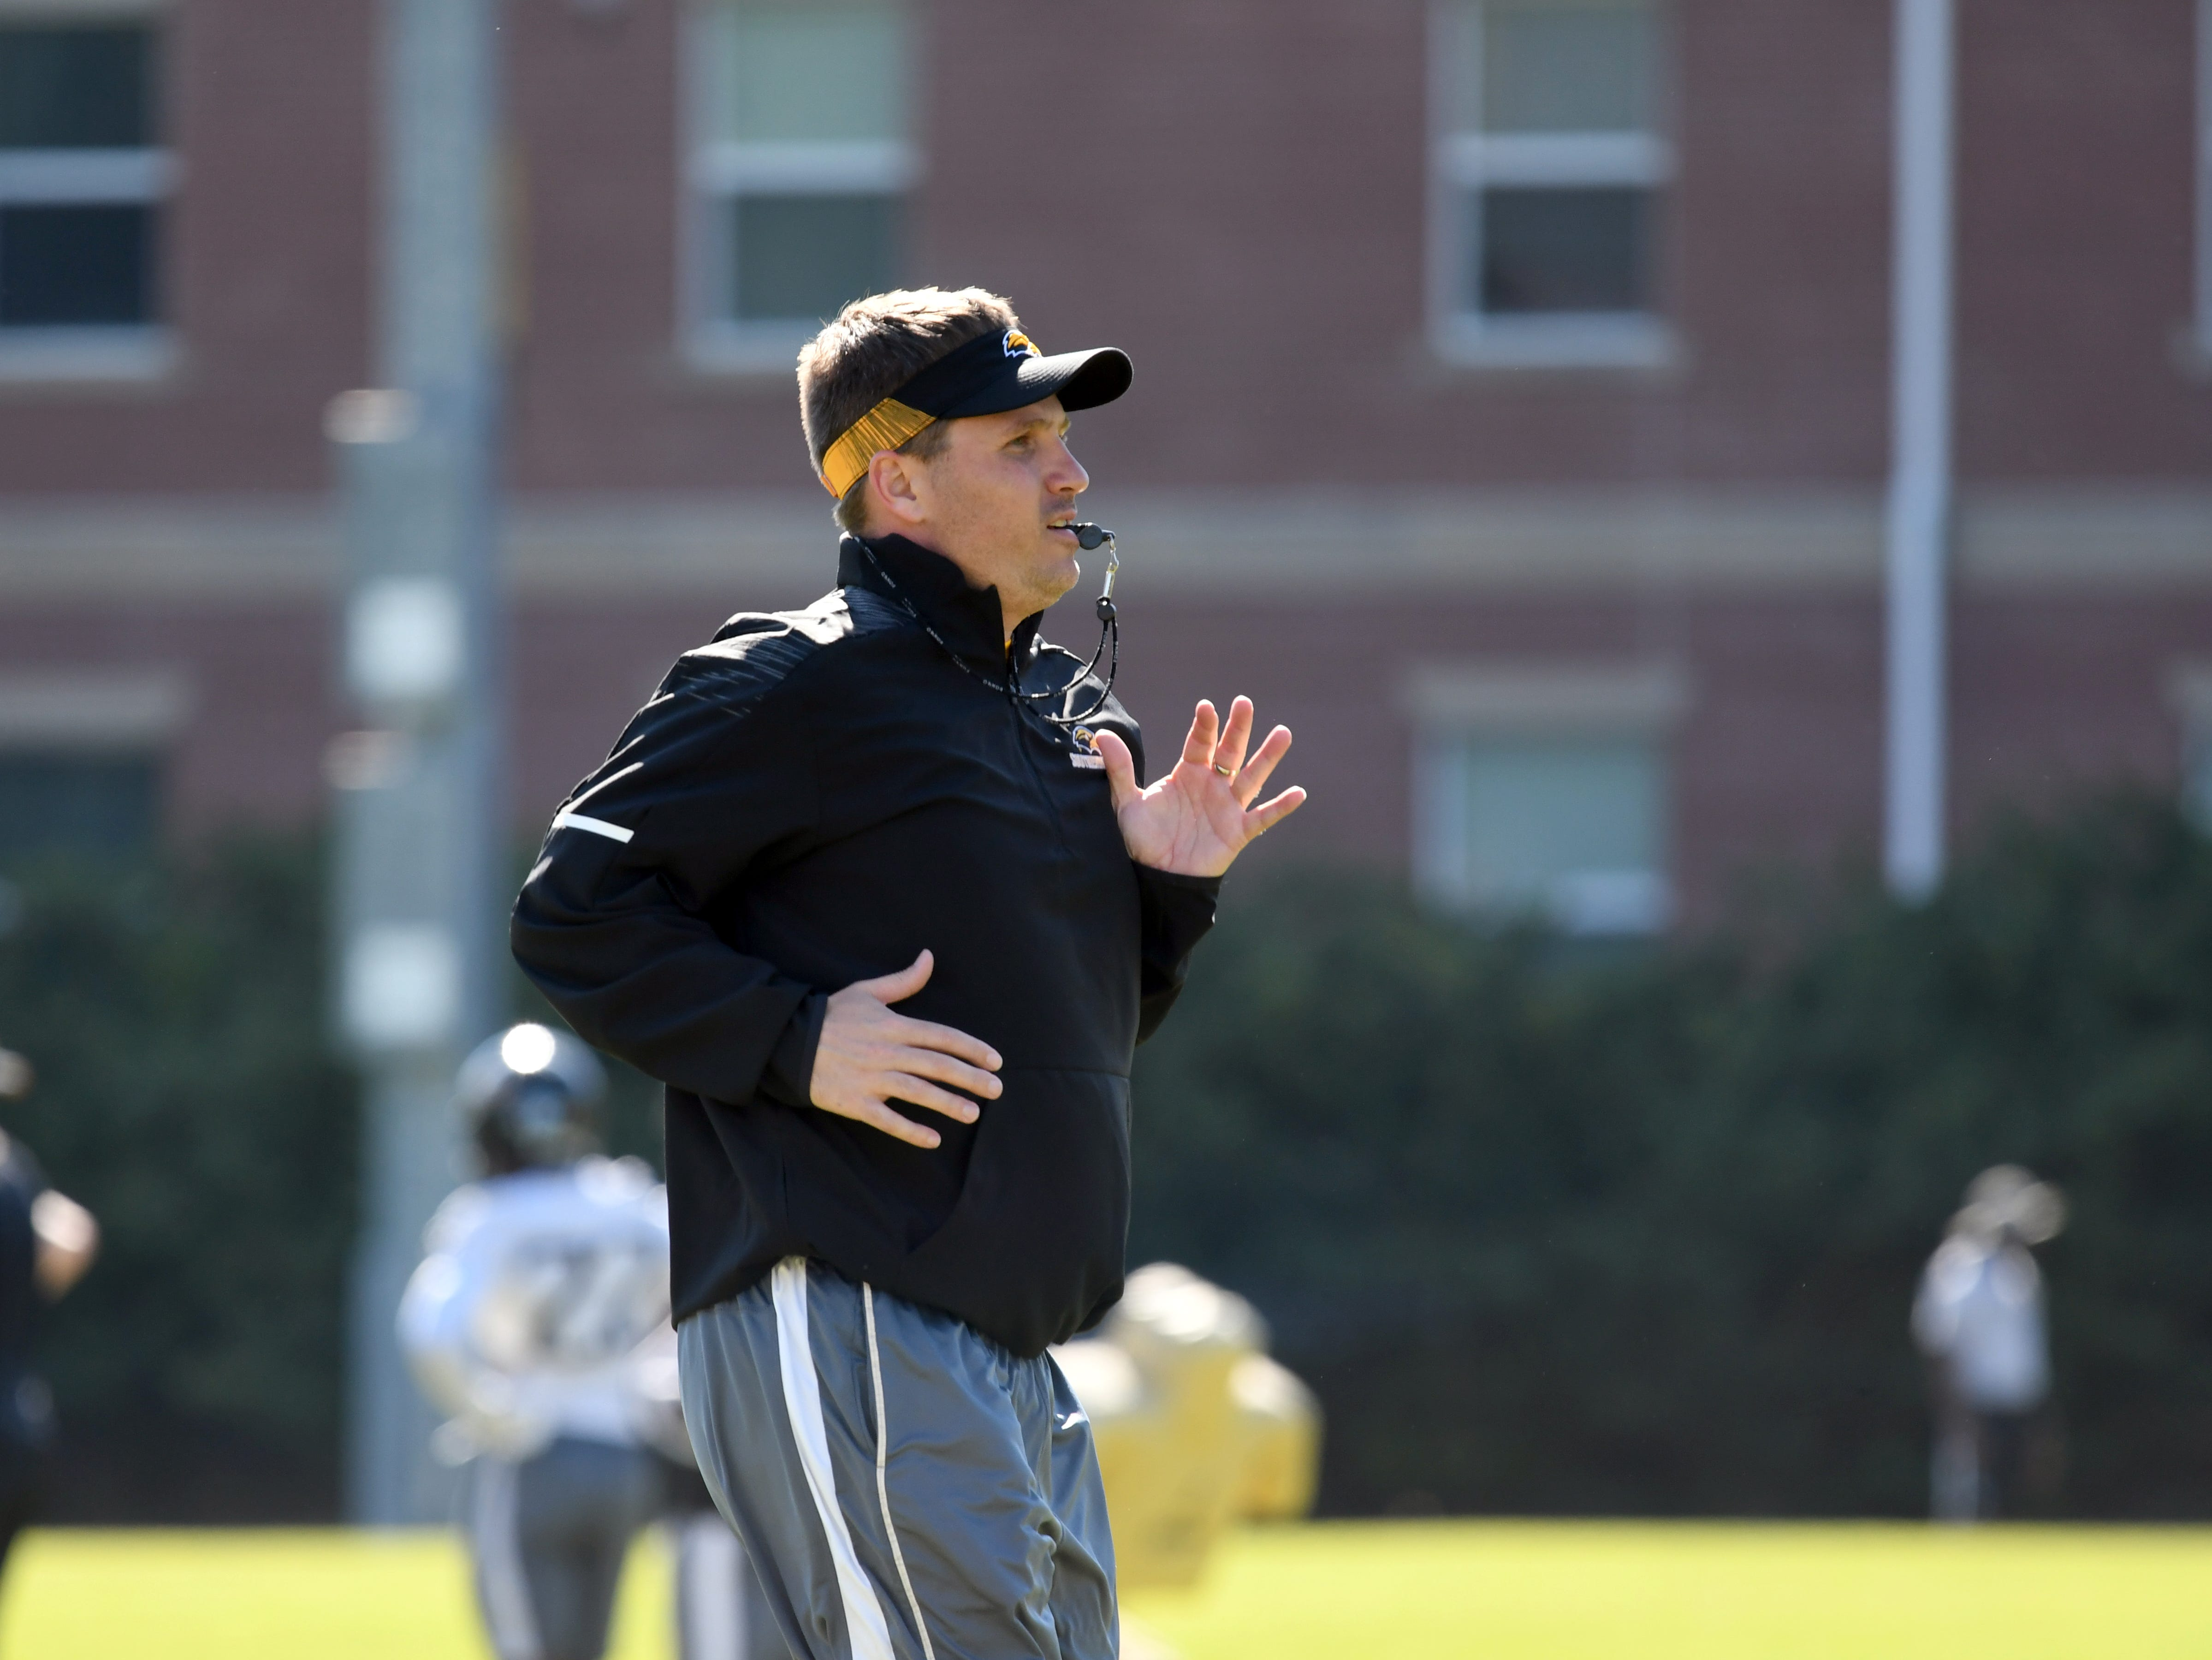 Southern Miss starts their first week of spring ball to prepare for the upcoming season.